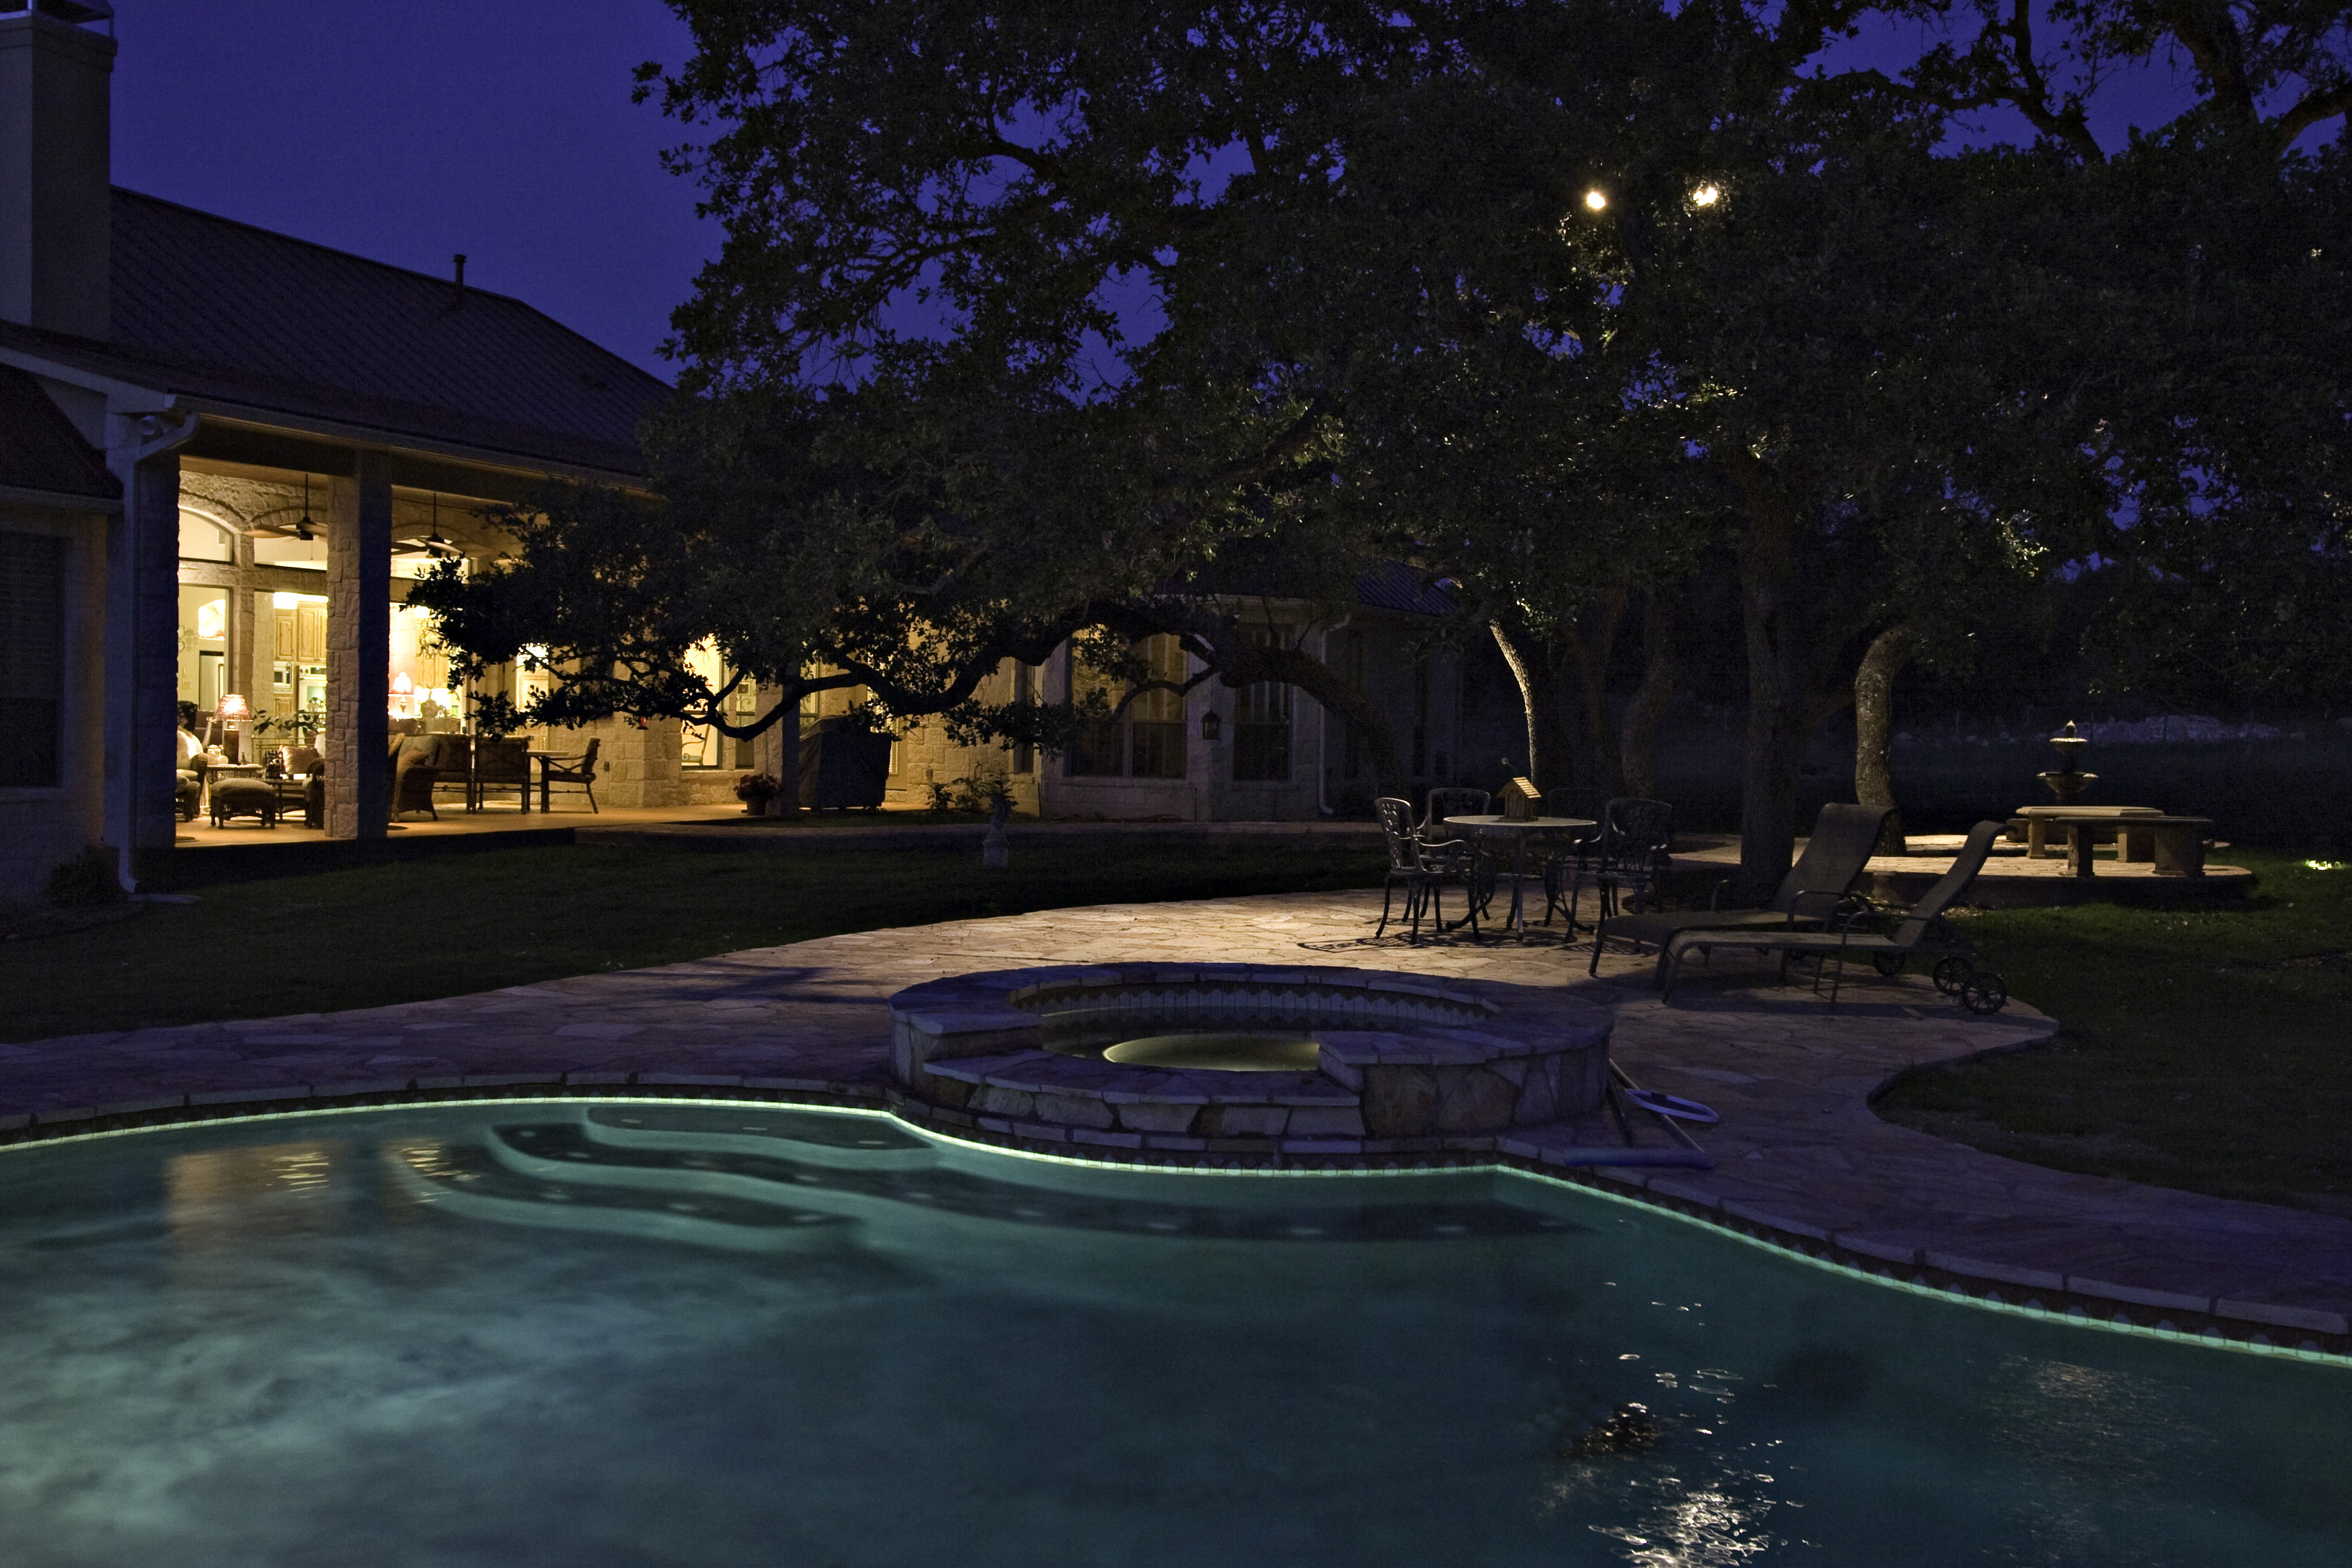 Outdoor lighting can create a romantic setting in your own backyard.